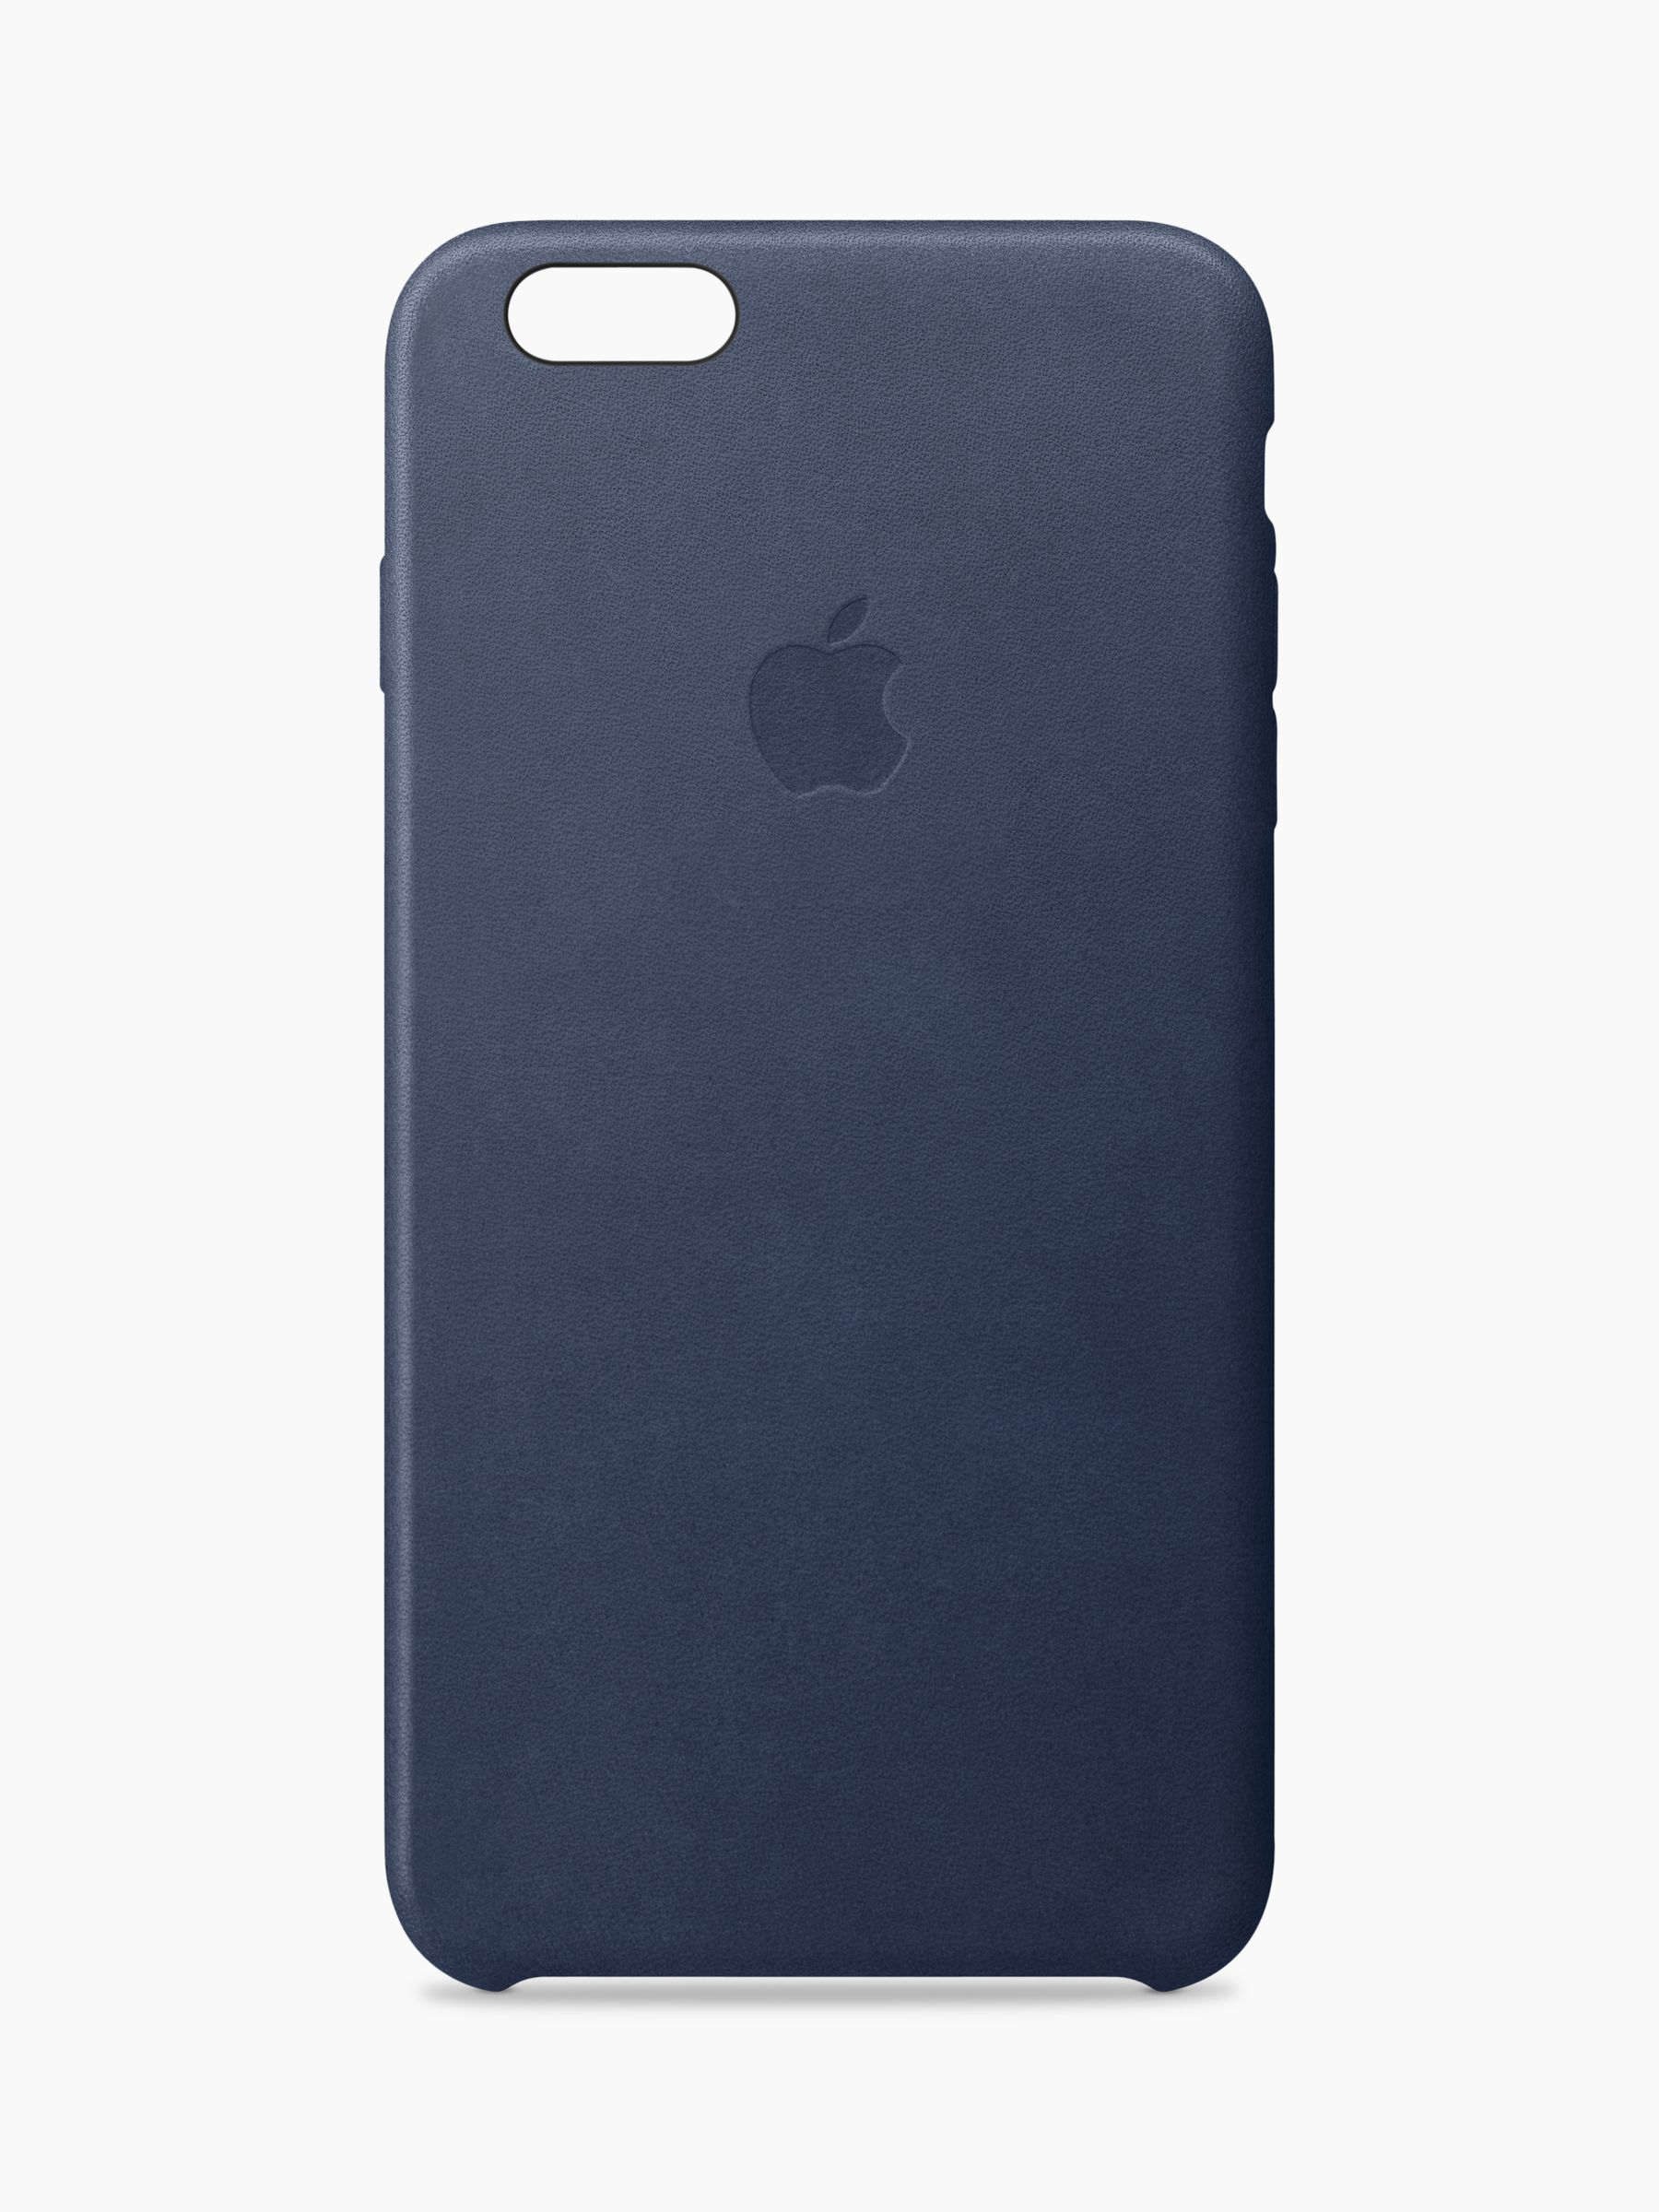 info for 81c31 0ee6b Apple Leather Case for iPhone 6/6s, Midnight Blue